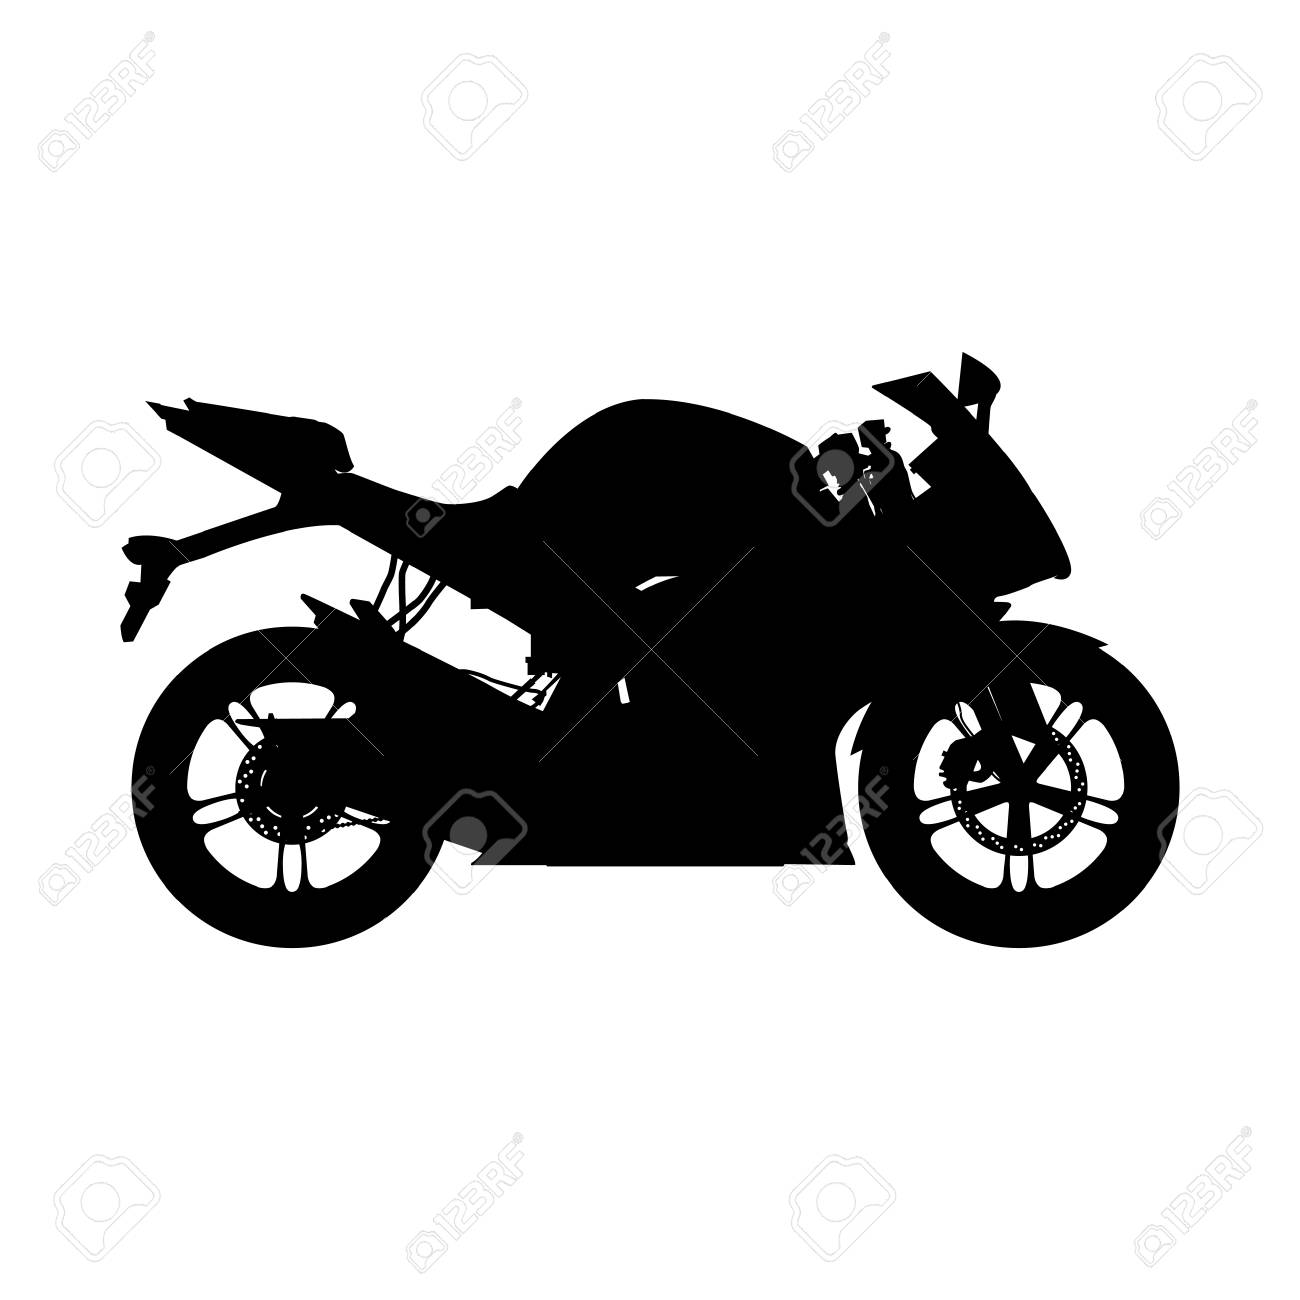 Motorcycle Silhouette Sport Bike Royalty Free Cliparts Vectors